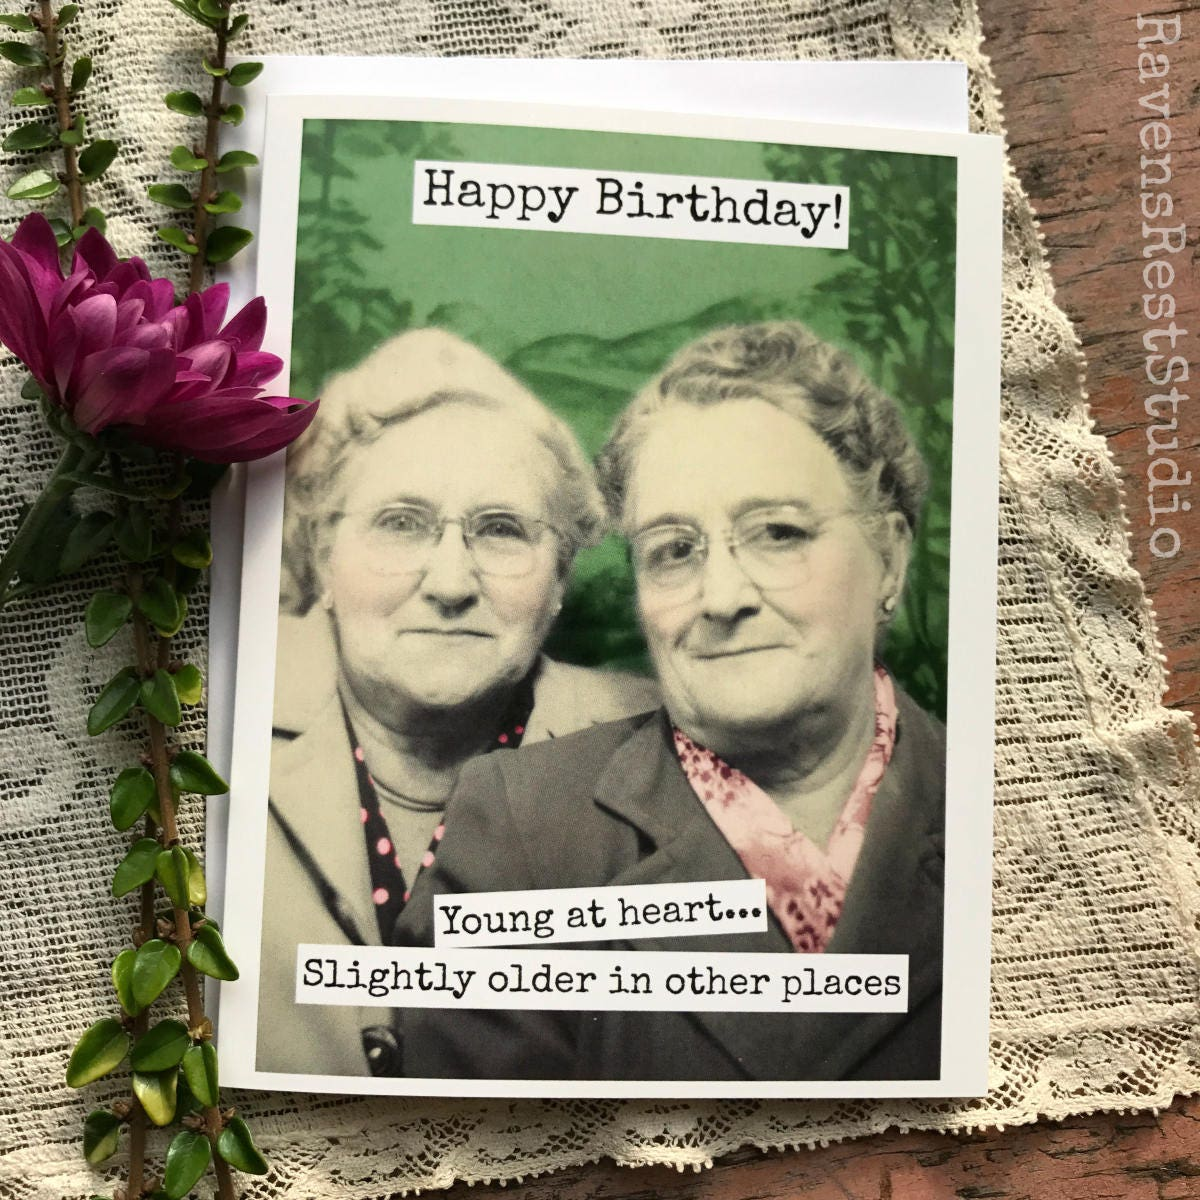 Funny Birthday Card. Greeting Card. Vintage Photo Booth Photo. Happy Birthday! Young At Heart